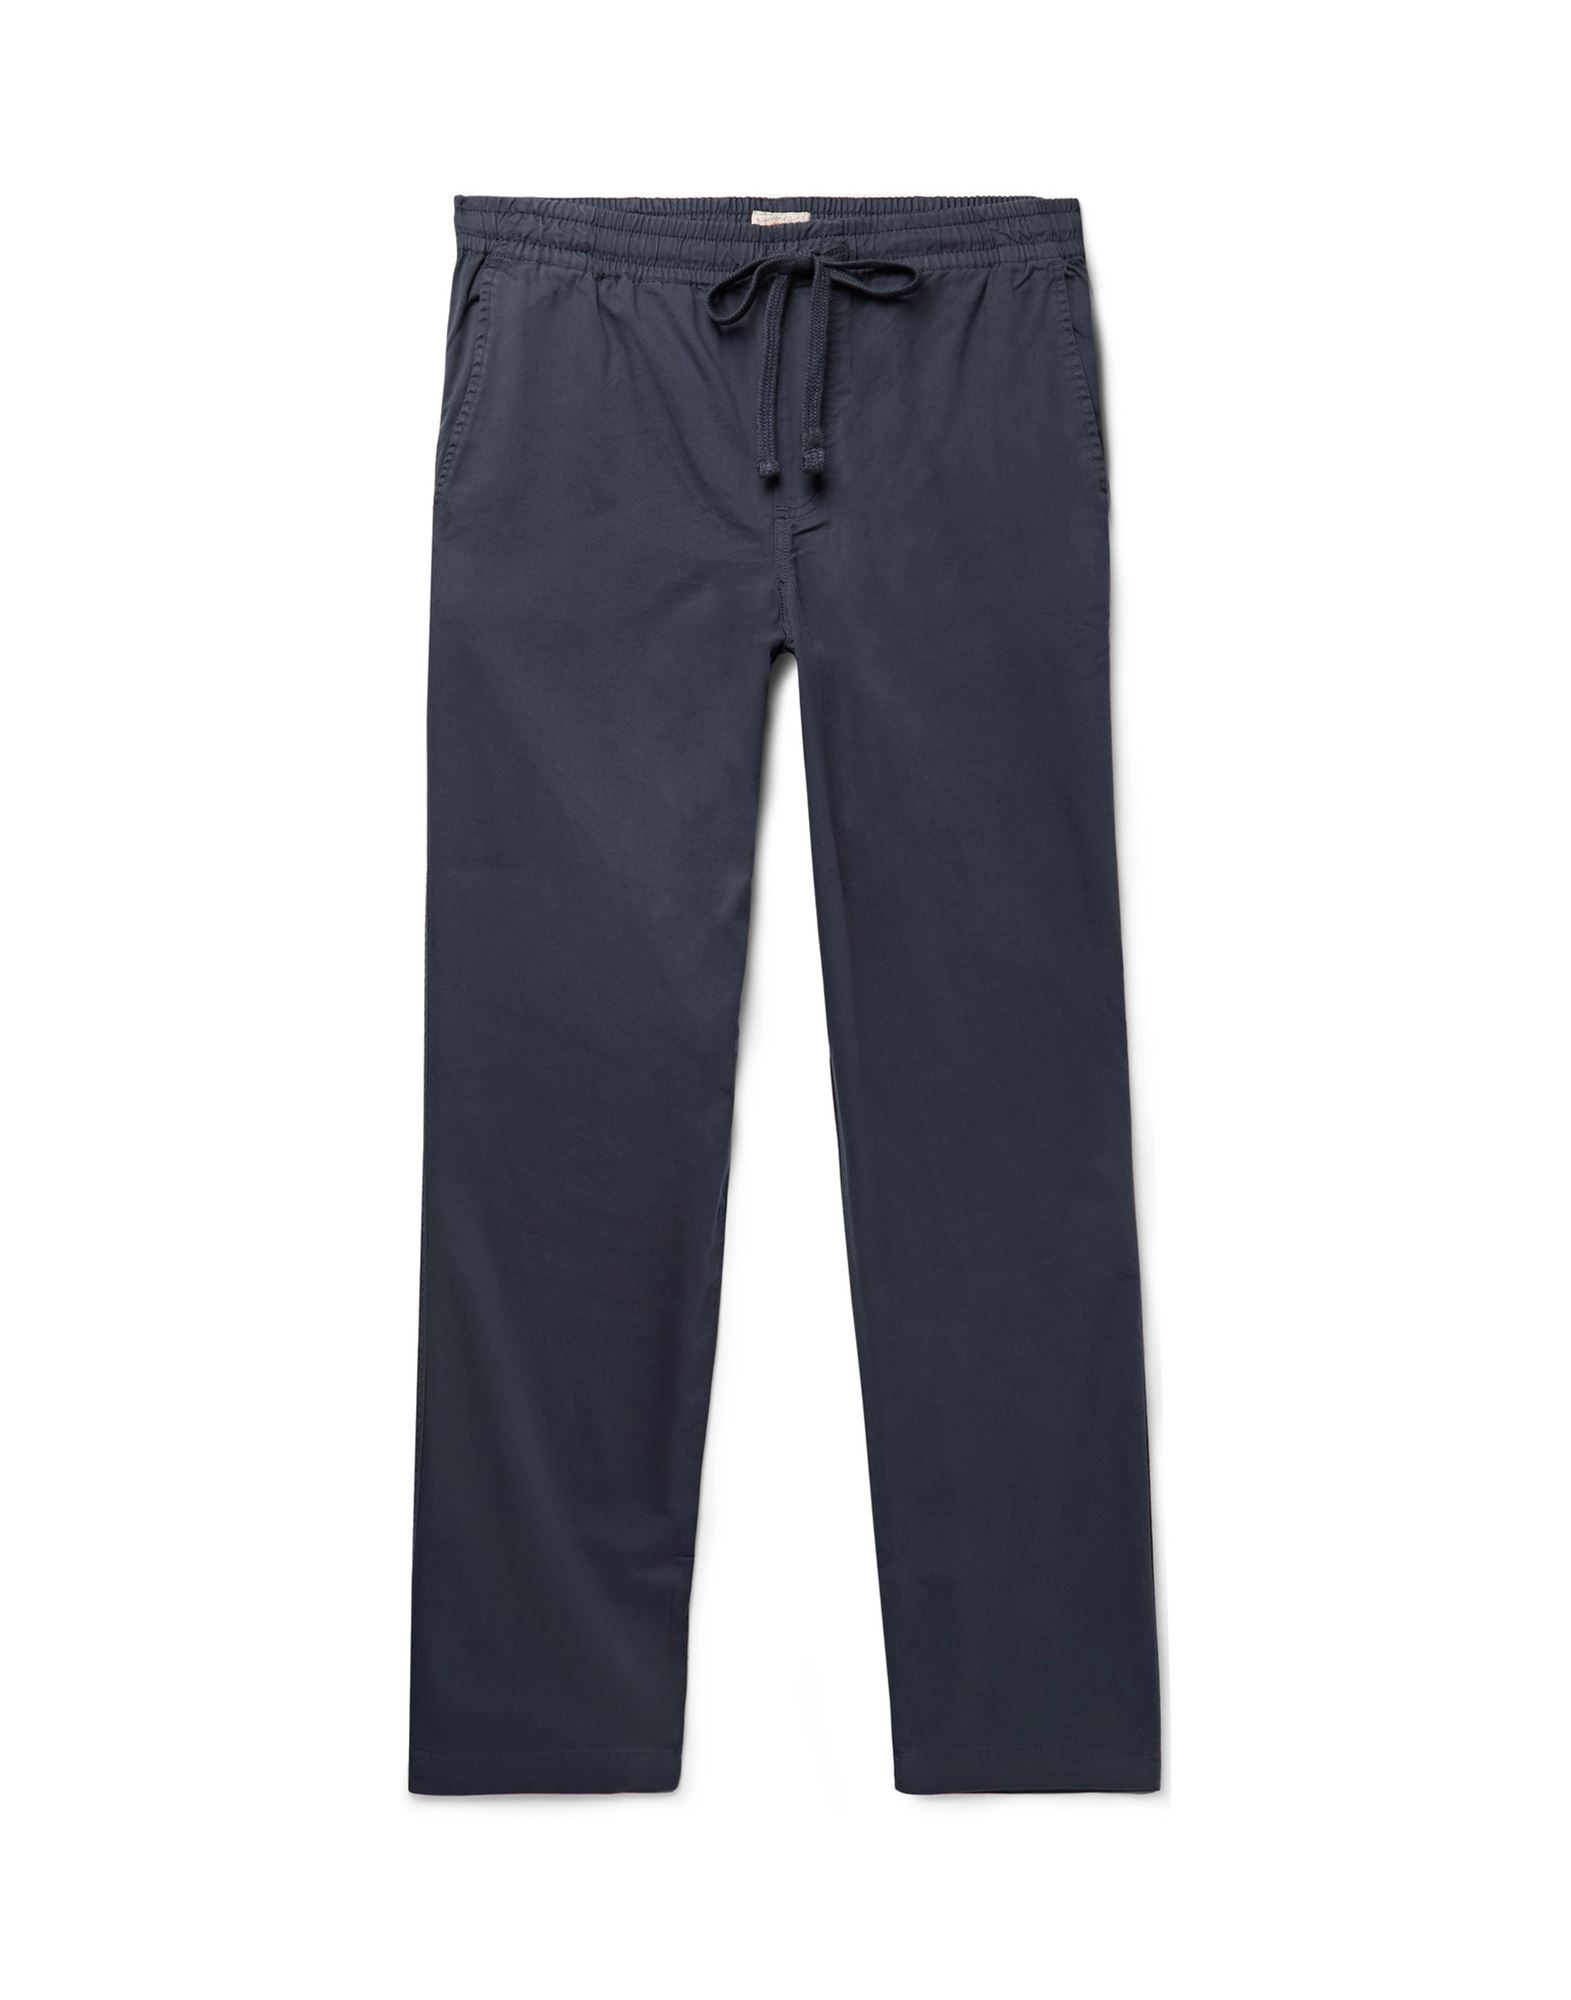 FAHERTY Casual pants. gabardine, basic solid color, no appliqués, mid rise, regular fit, tapered leg, drawstring closure, multipockets. 60% Cotton, 40% Lyocell